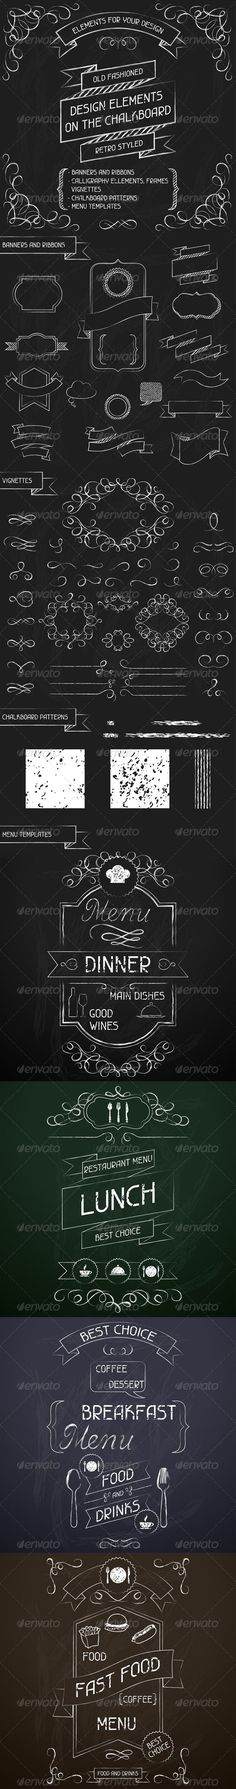 Chalkboard Designs Ideas christmas chalkboard doodle ideas more for diy wrapping paper Design Elements On The Chalkboard